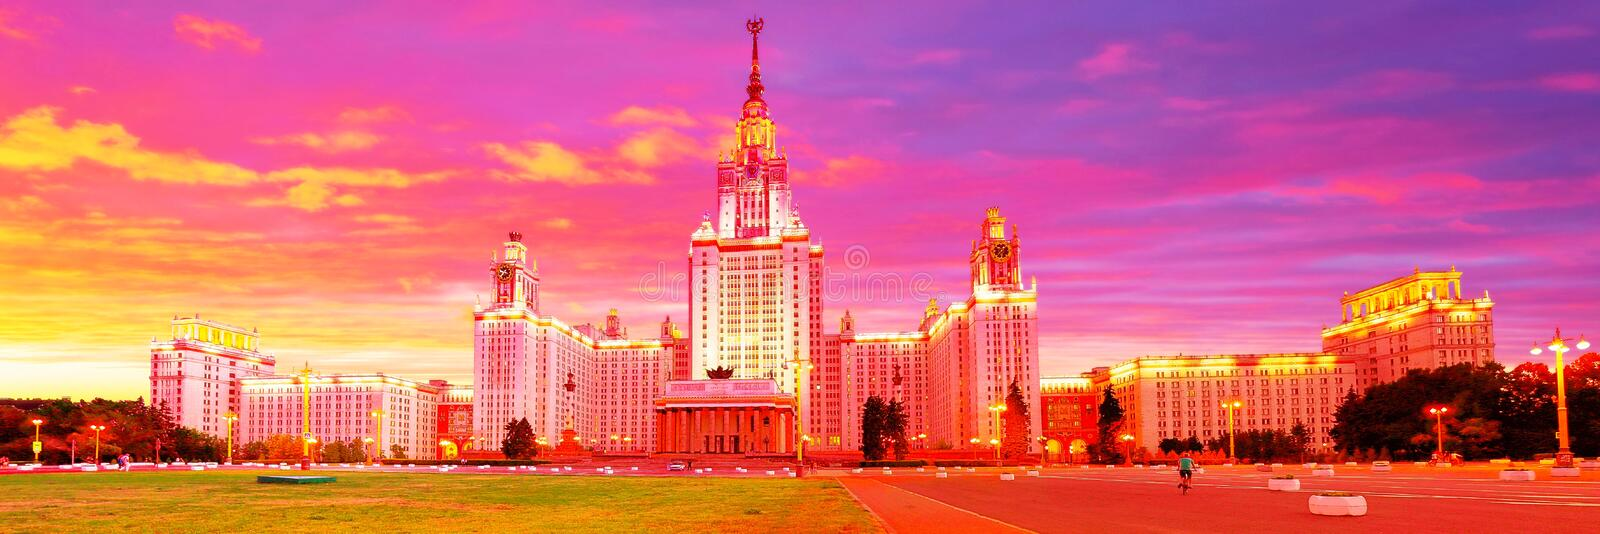 Dramatic wide angle panoramic evening view of illuminated famous Russian university  under bright dramatic evening sky royalty free stock photos